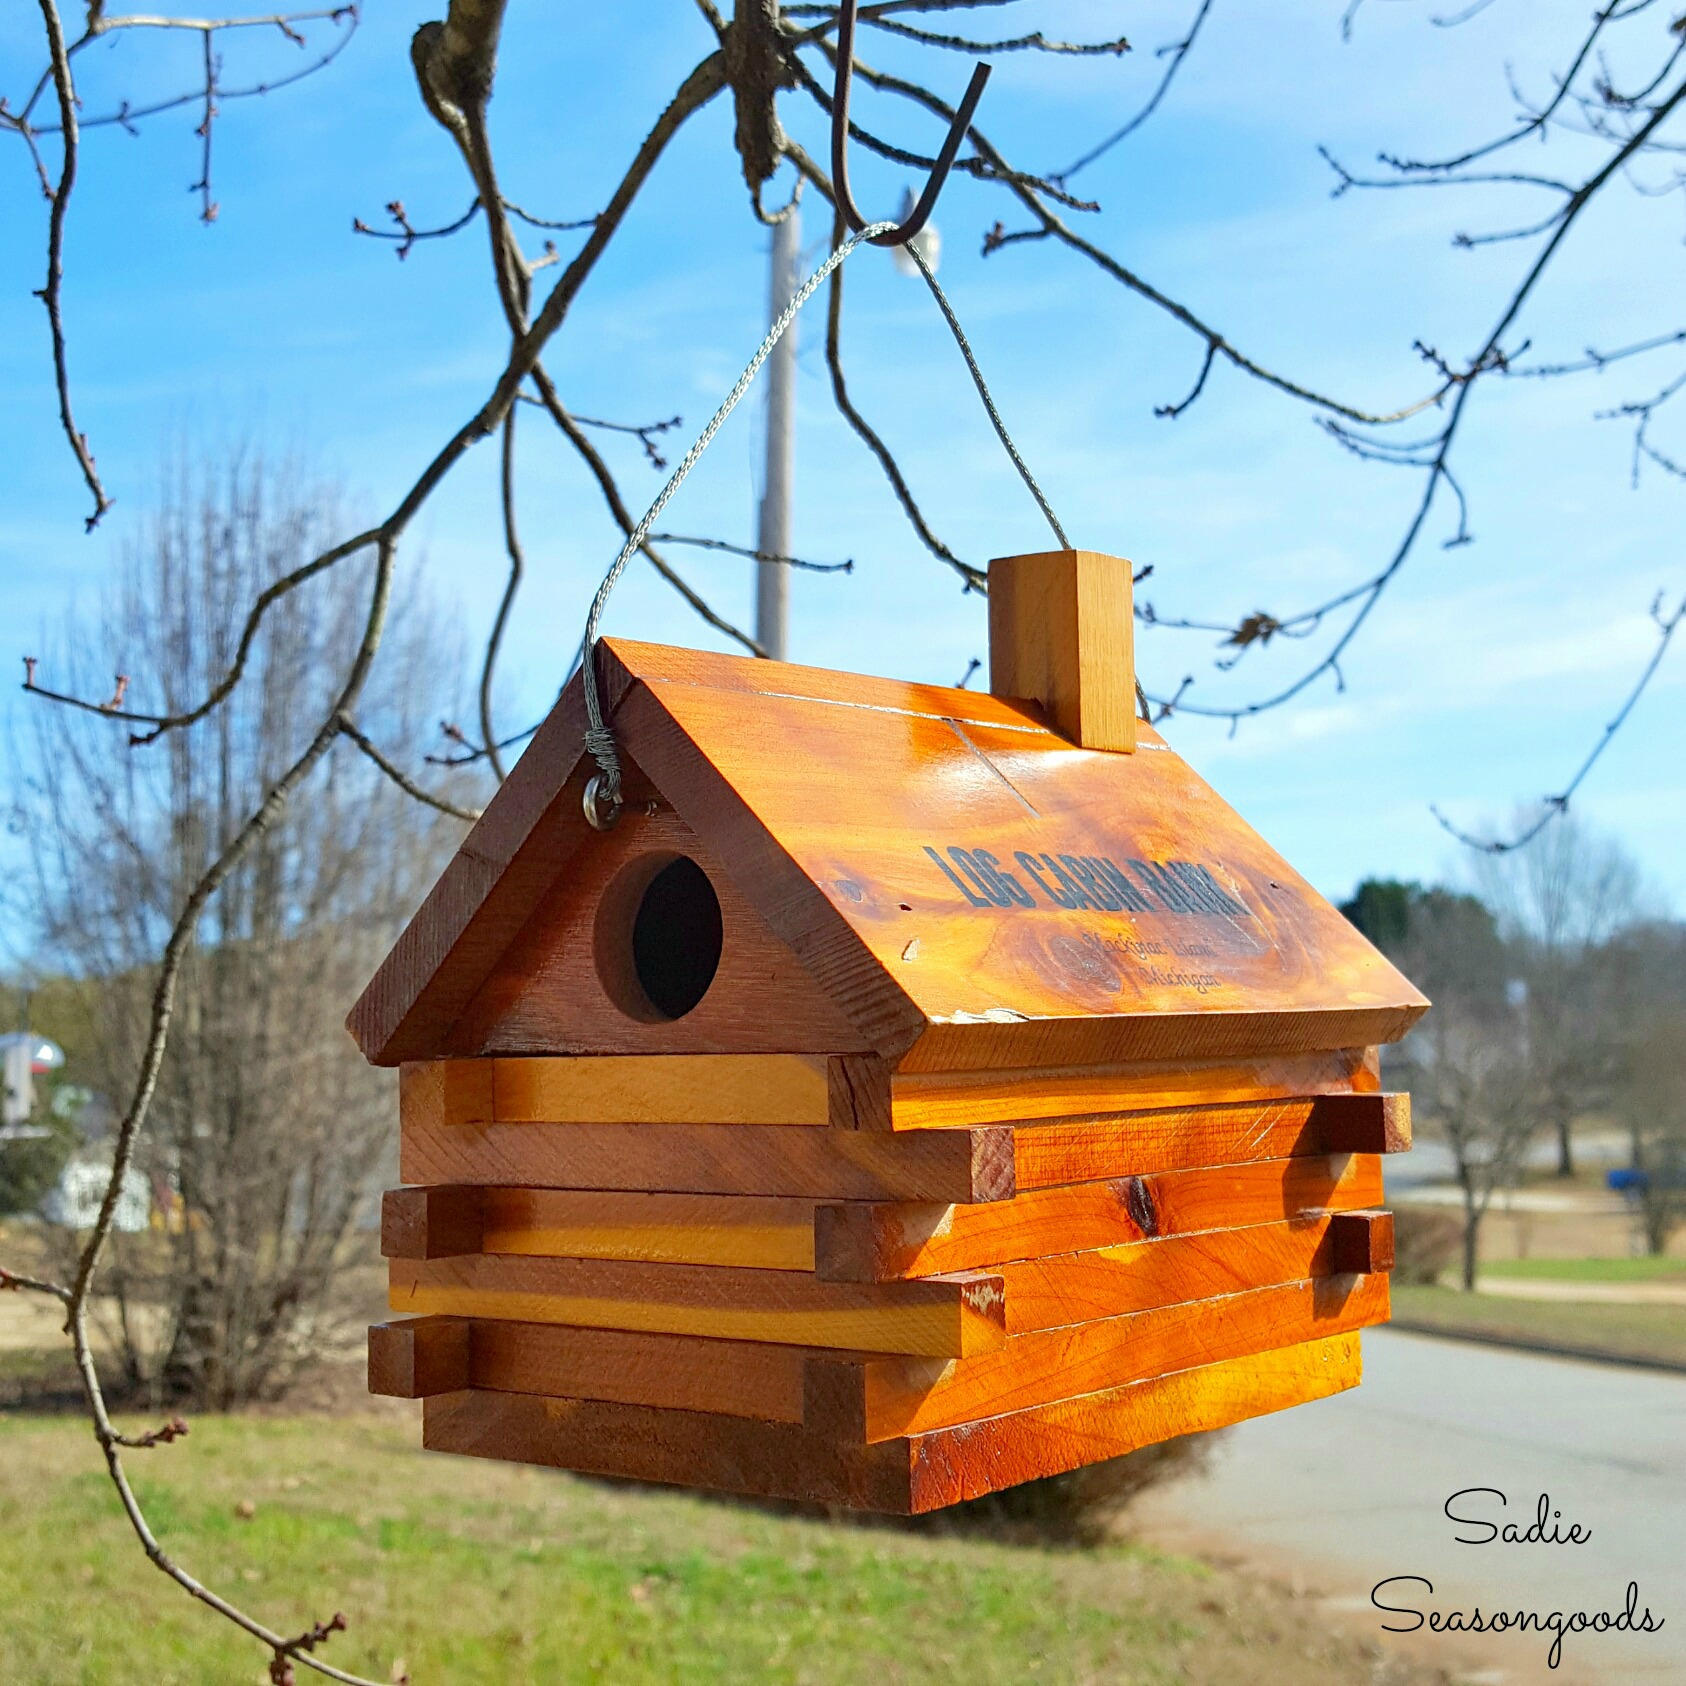 http://thecottagemarket.com/wp-content/uploads/2017/03/Vintage_souvenier_log_cabin_bank_repurposed_upcycled_as_DIY_birdhouse_for_small_birds_wrens_and_chickadees_by_Sadie_Seasongoods.jpeg